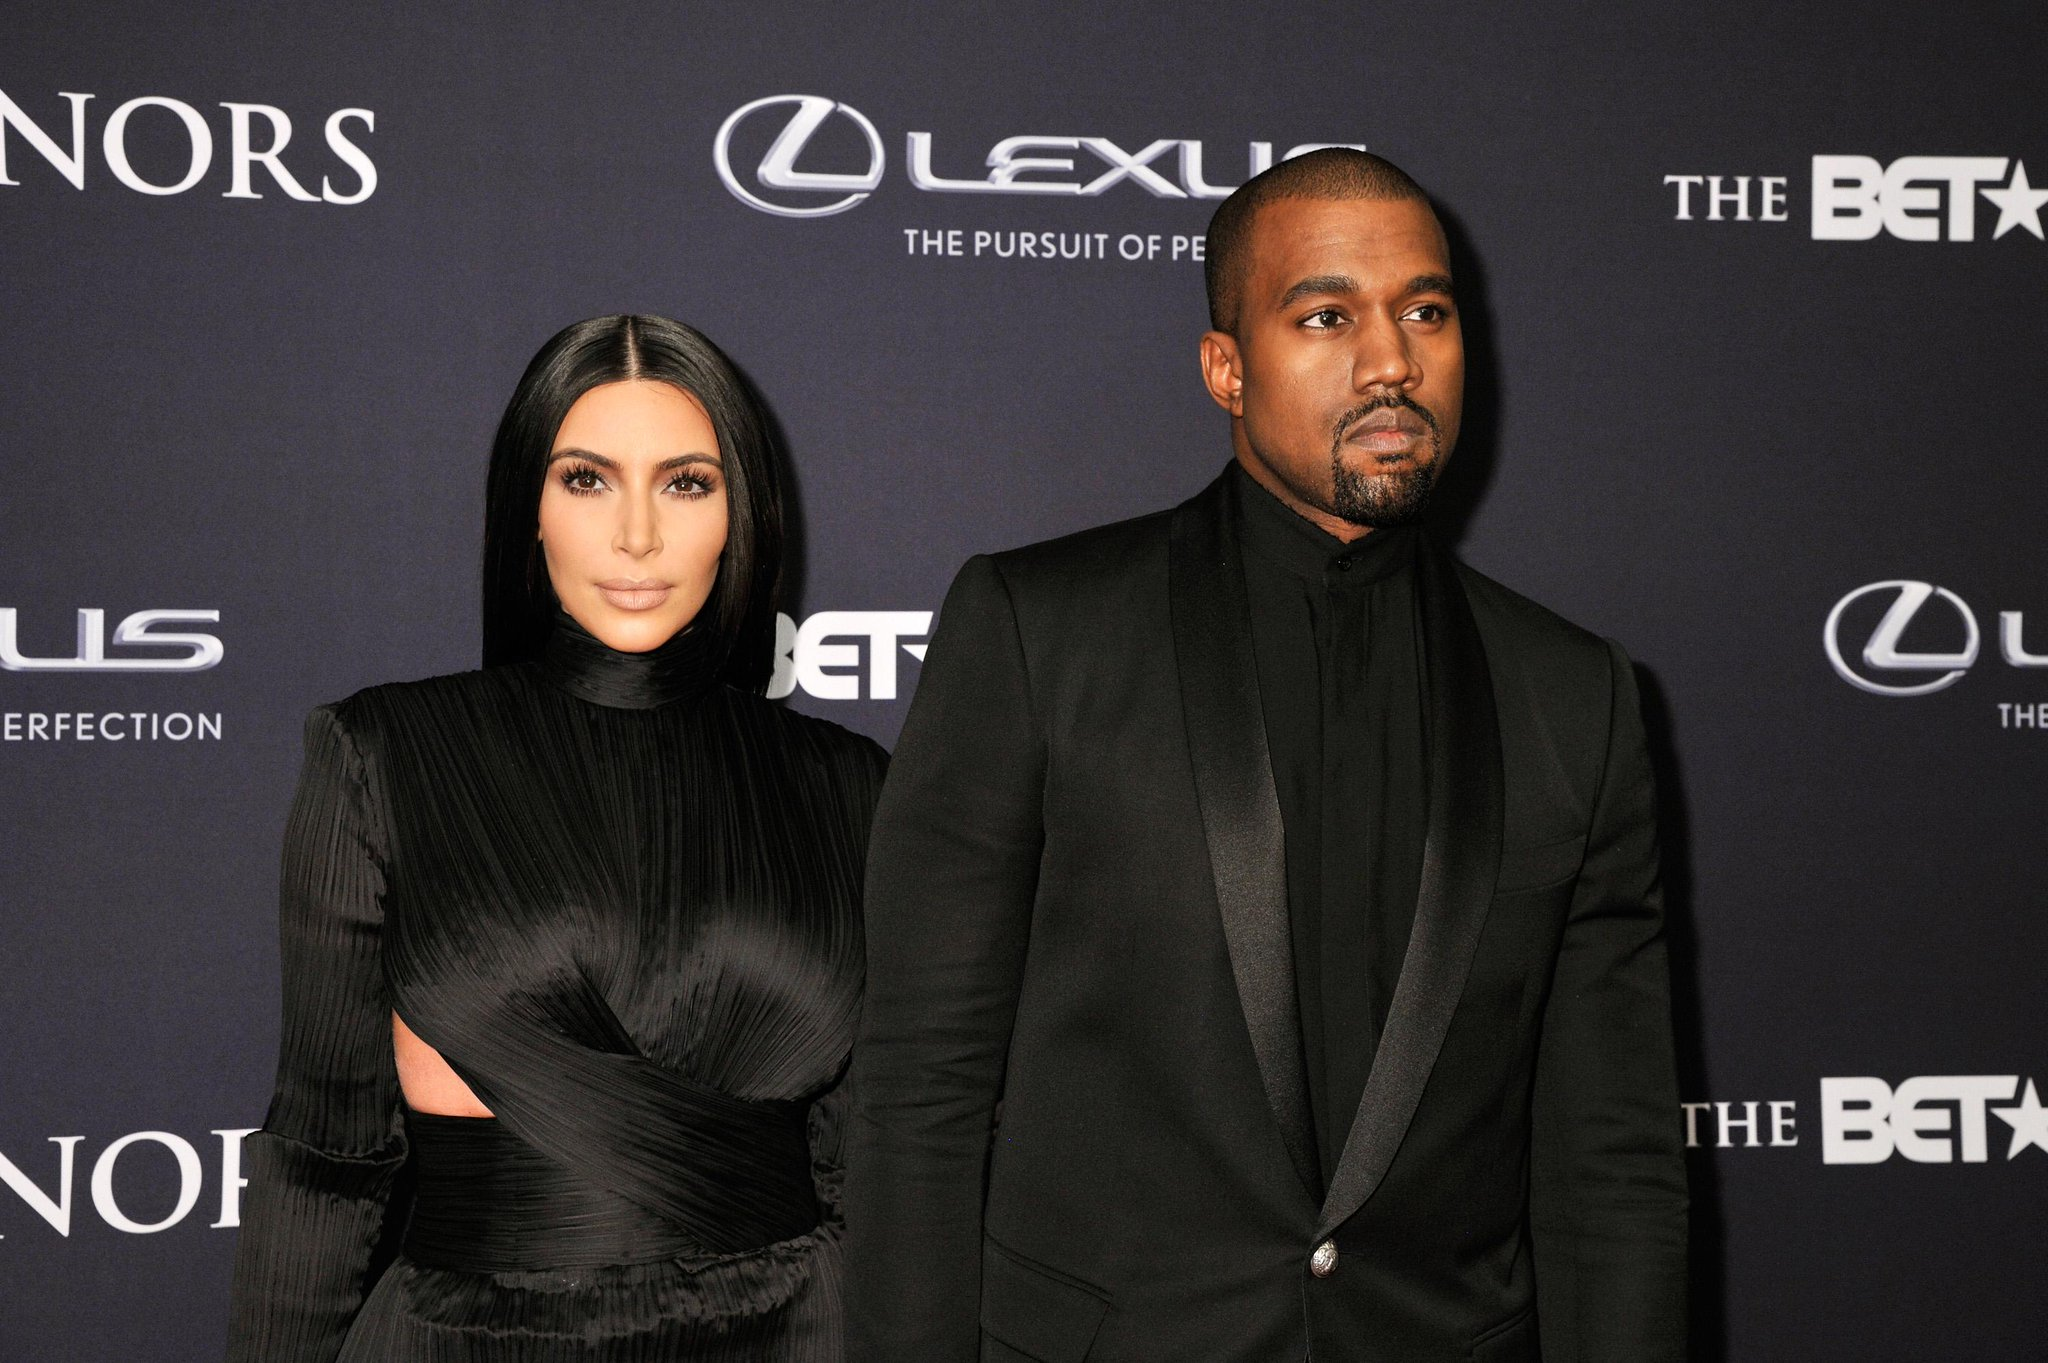 That time @KimKardashian and @kanyewest looked like perfect @Balmain dolls on the red carpet: http://t.co/bTXyEObLZU http://t.co/qPTLXbw7Zh